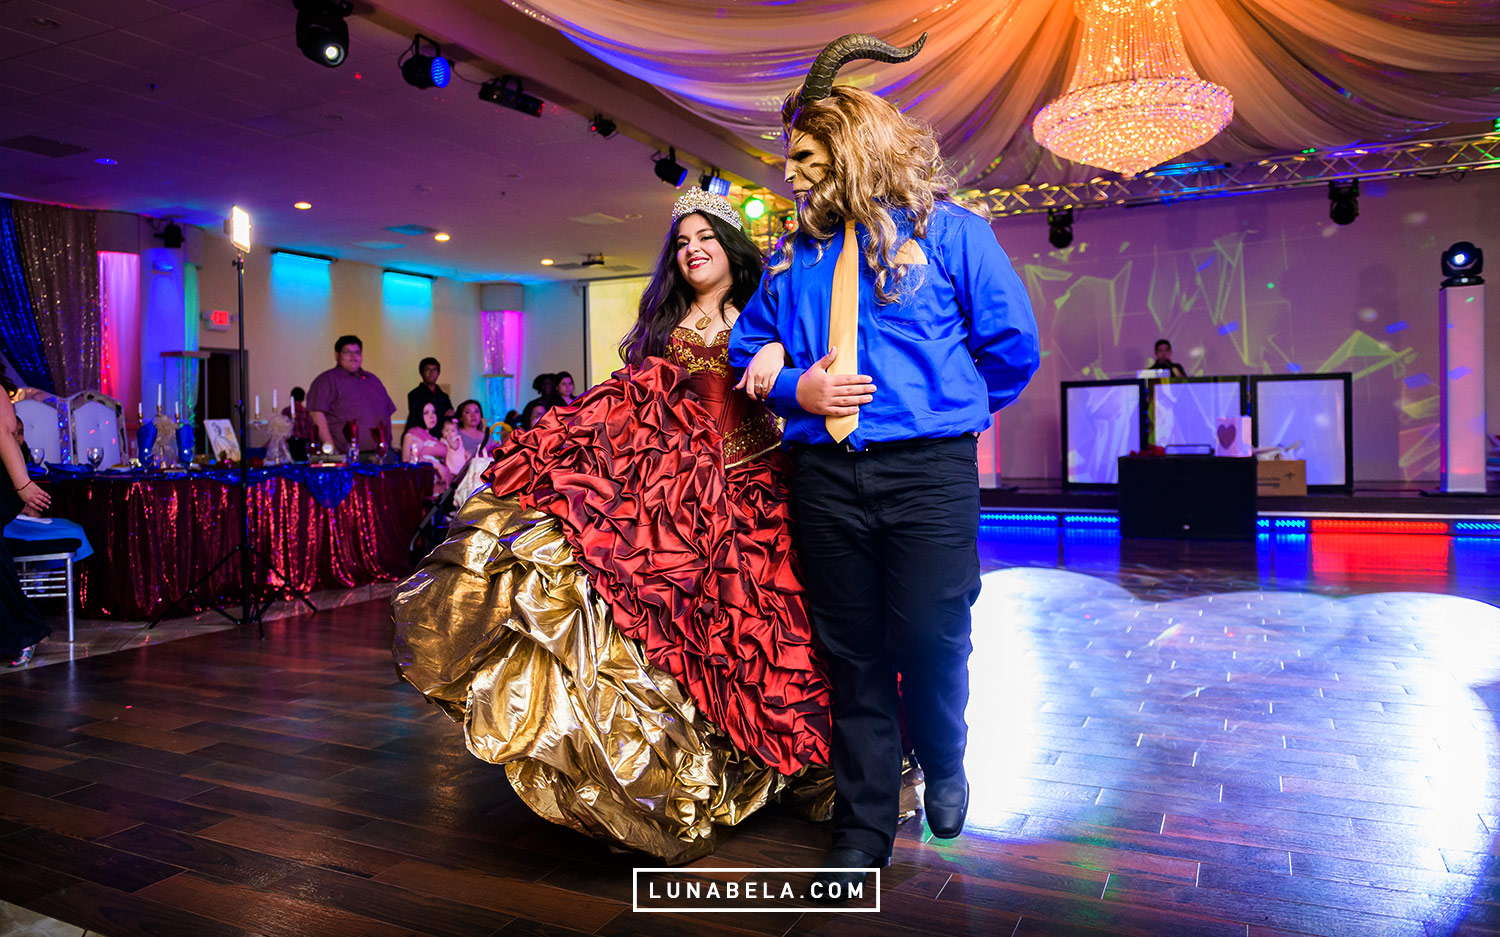 fotografo-de-quinceanera-lunabela-photography-houston-photographer-abygail9.jpg